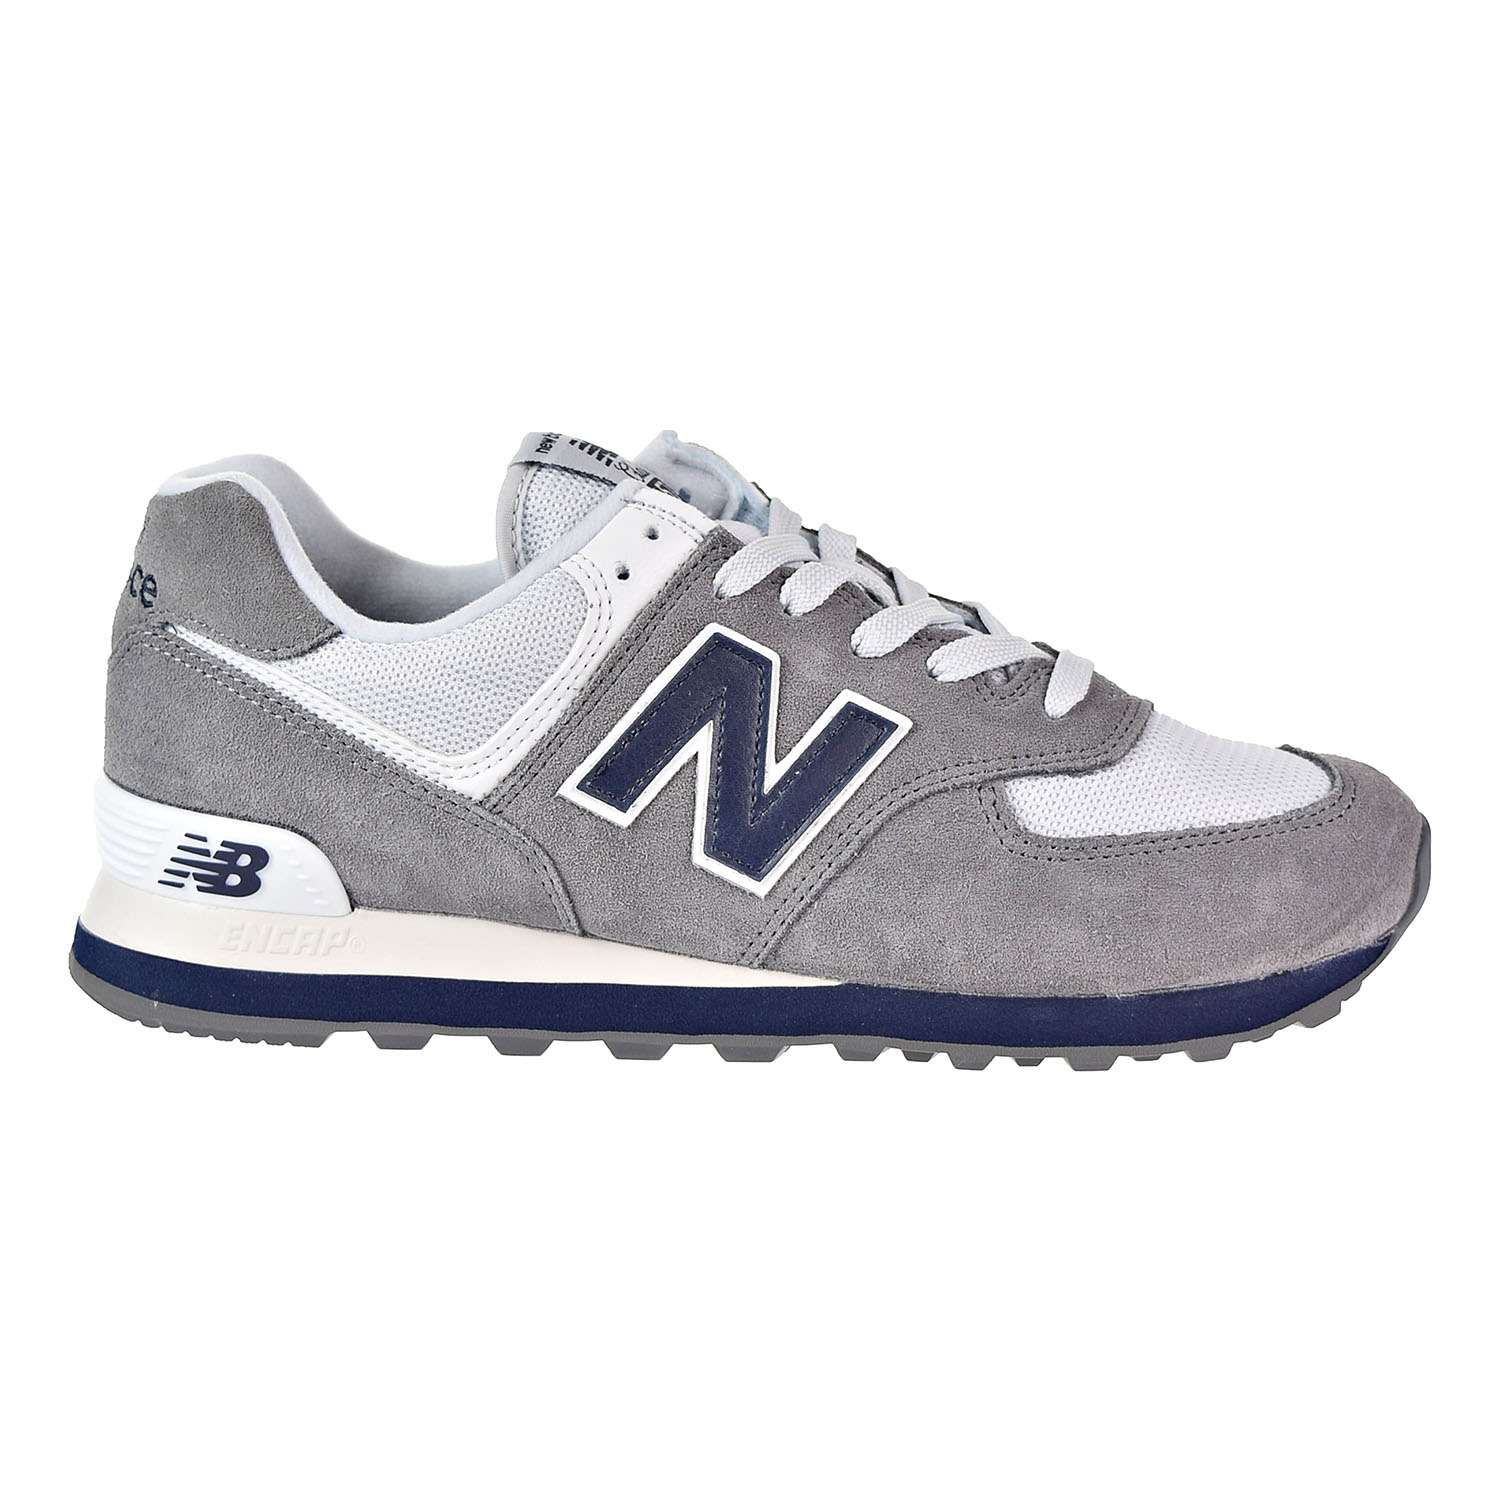 Details about New Balance 574 Core Plus Men's Shoes Grey/Blue/White ML574ESD